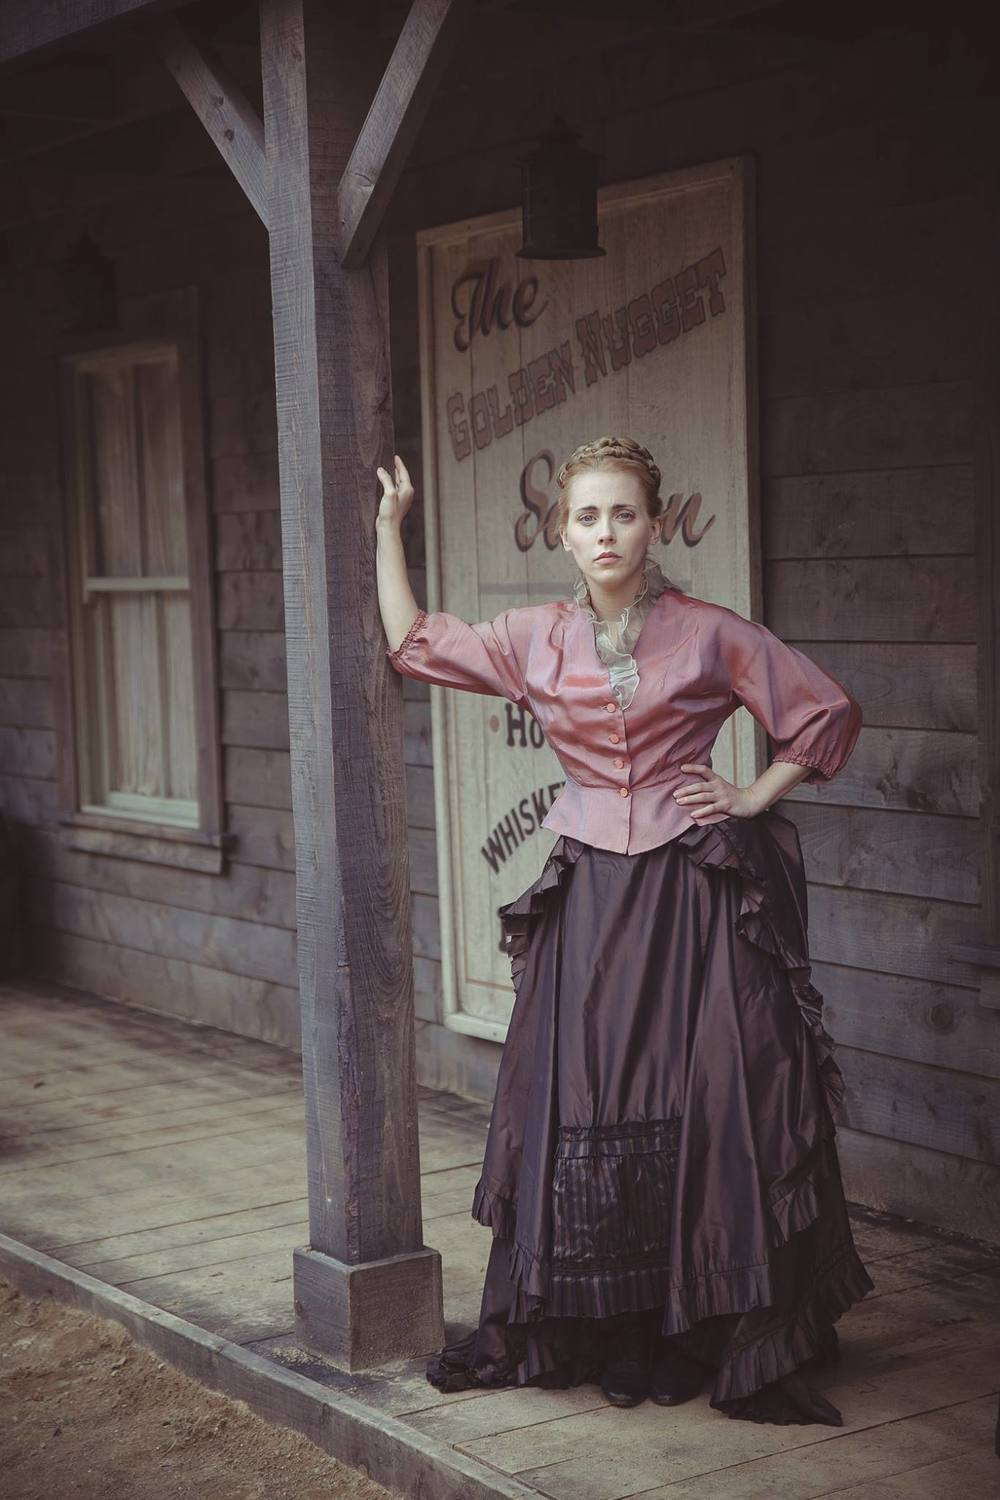 As Estella Hopkins in An Klondike (photographer: Sean T. O' Meallaigh)